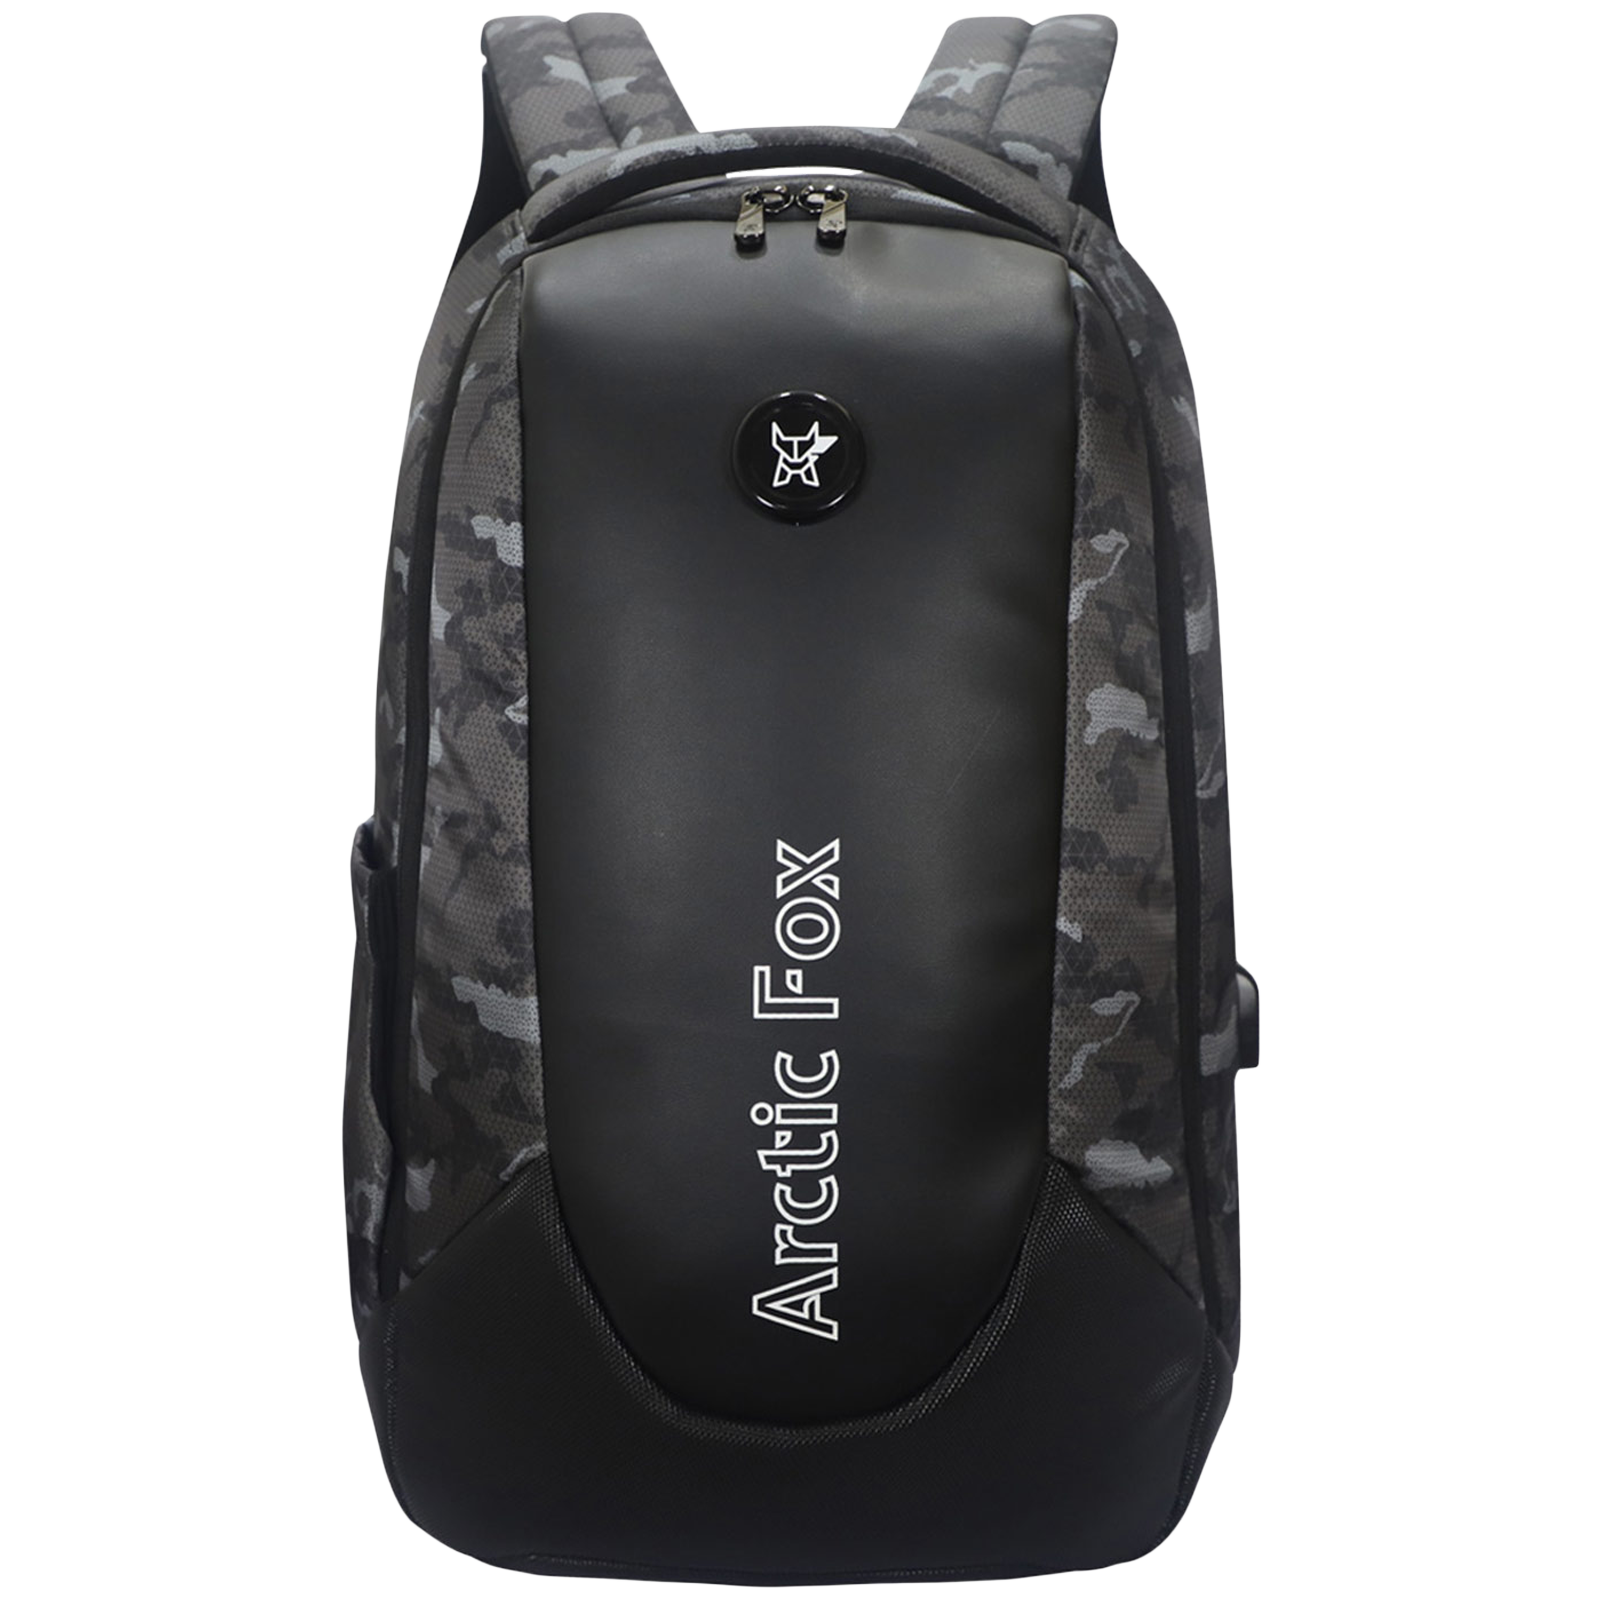 Arctic Fox Alarm Anti-Theft 35 Litres Polyester Backpack for 15 Inch Laptop (USB Charging Port, FUNBPKGRYON211035, Camo Black)_1